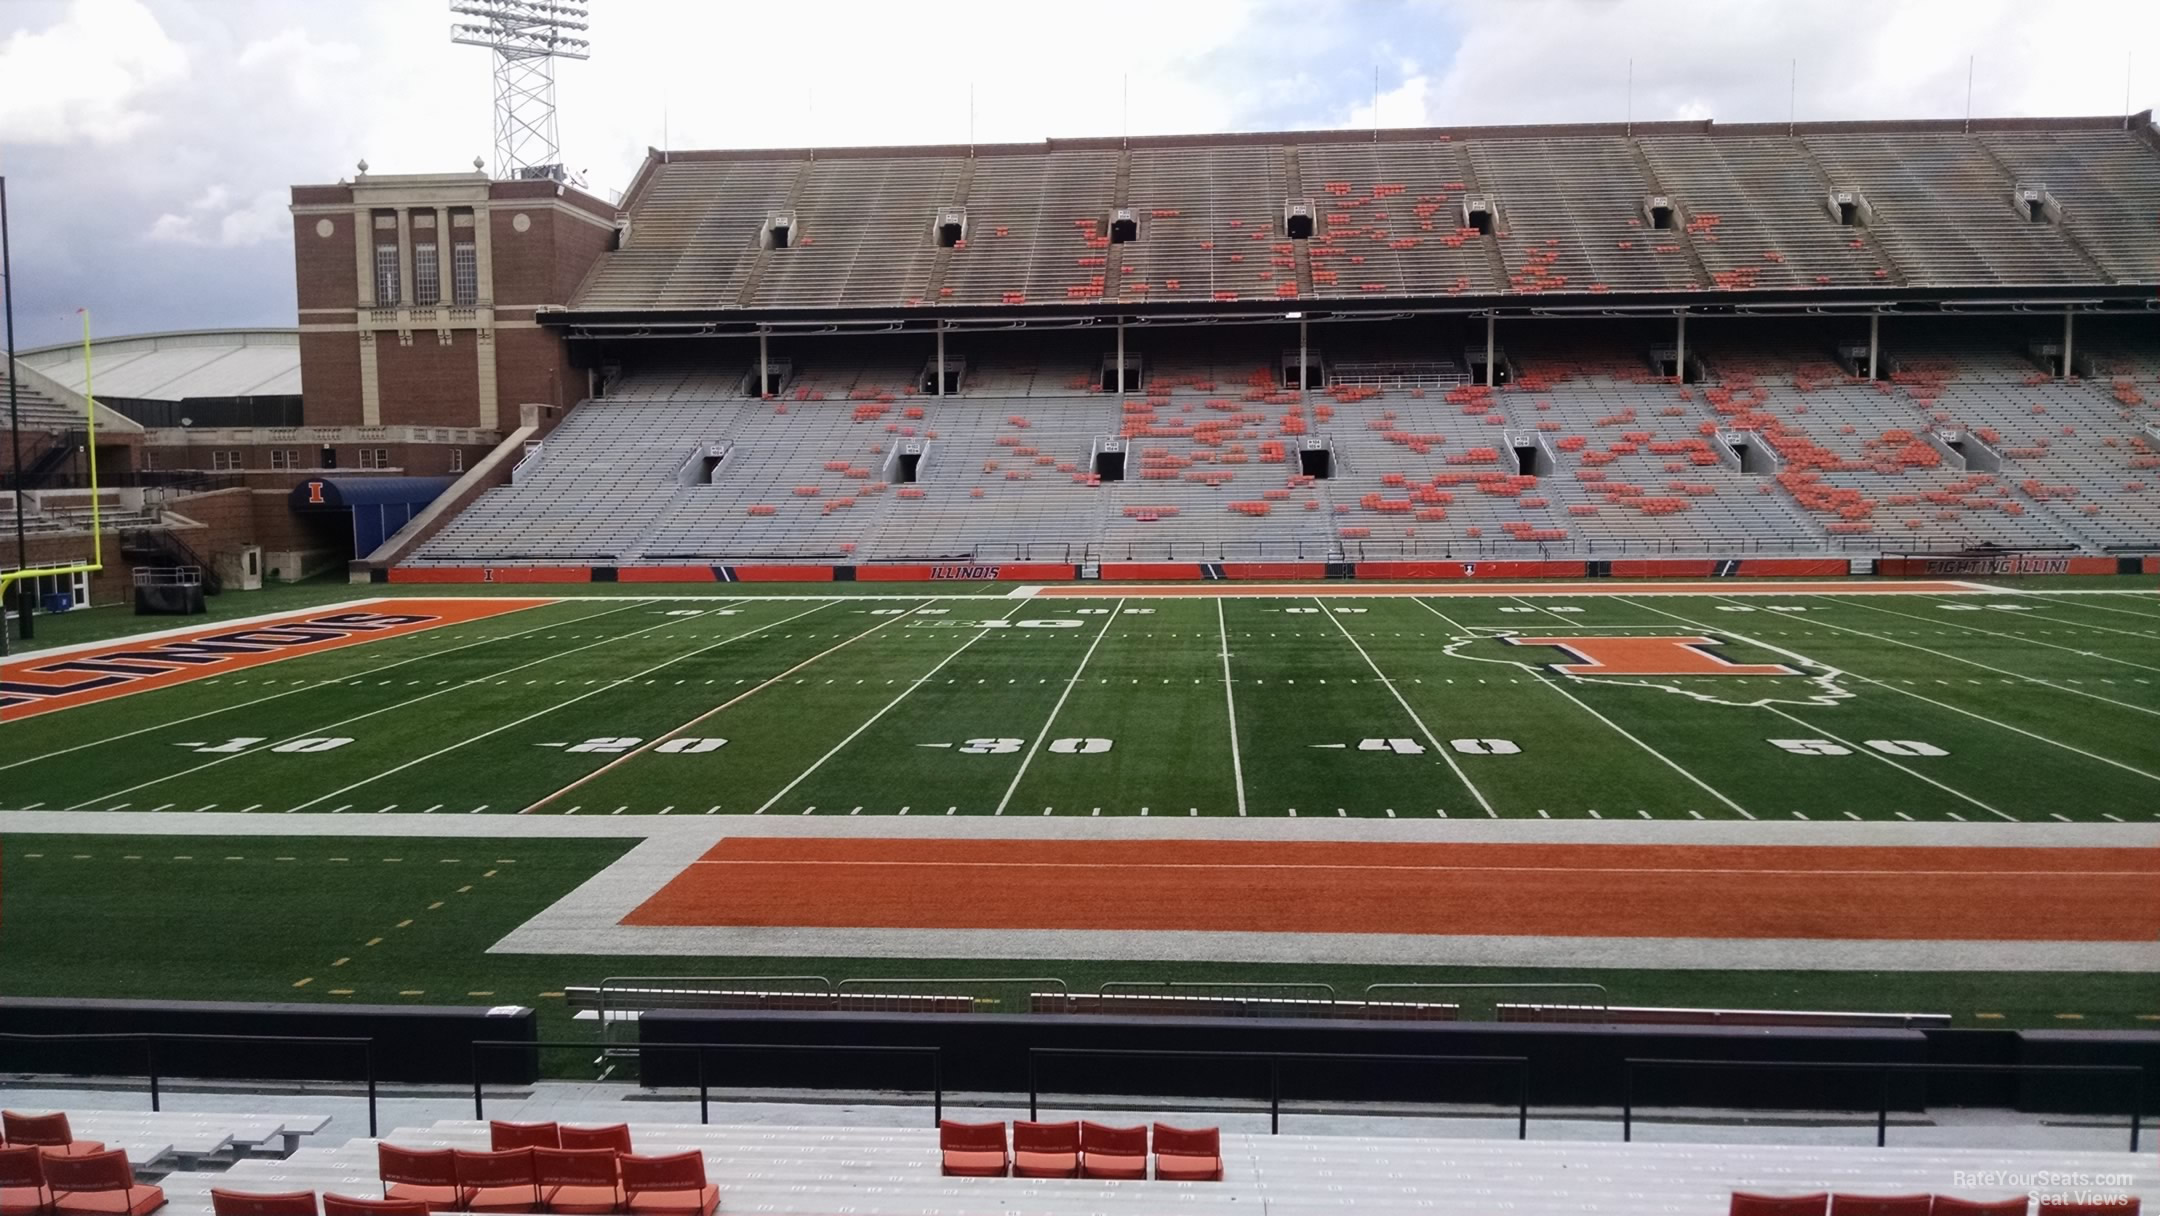 Seat View for Memorial Stadium - IL Section 128, Row 25